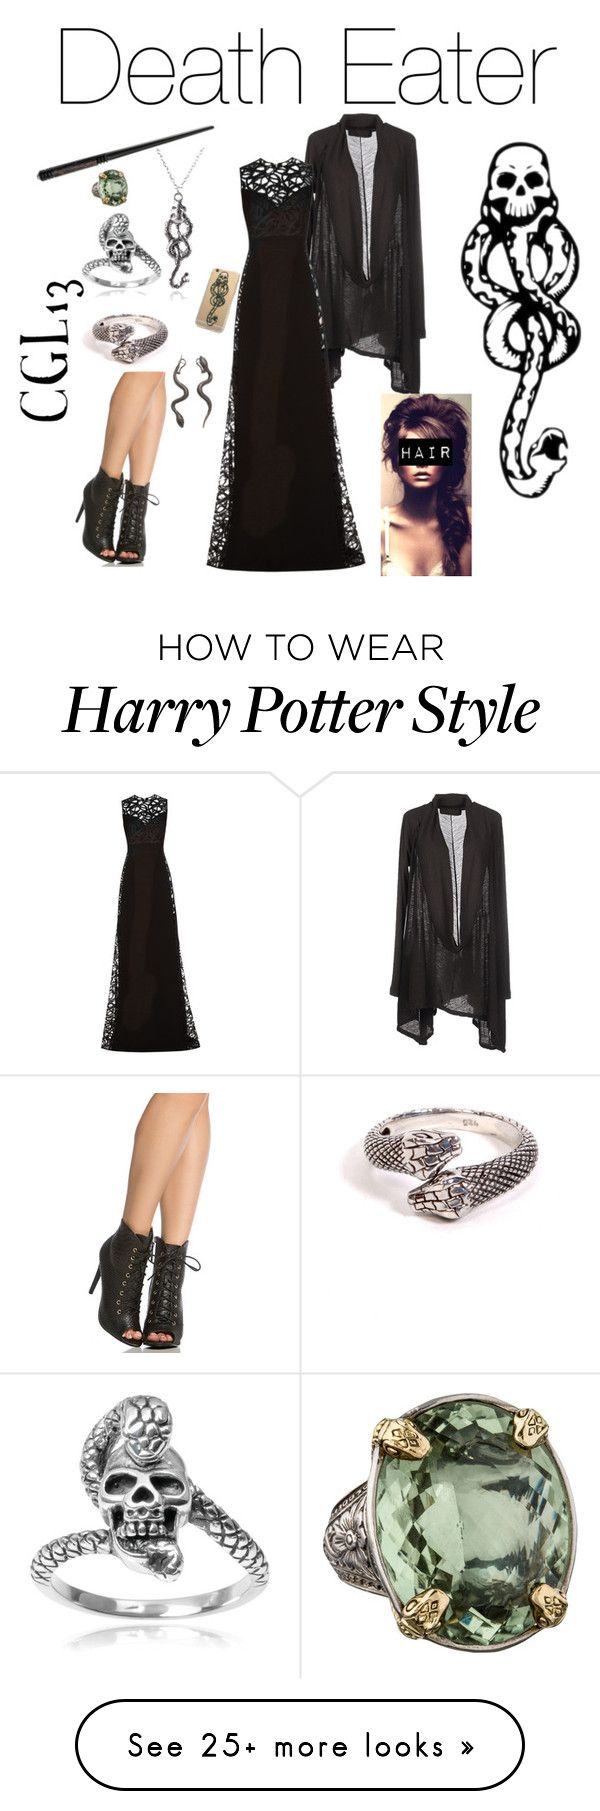 """Death Eater"" by cgl13 on Polyvore featuring Tressa, Nicolas & Mark, Faraone Mennella by R.F.M.A.S., Elie Saab and Konstantino"